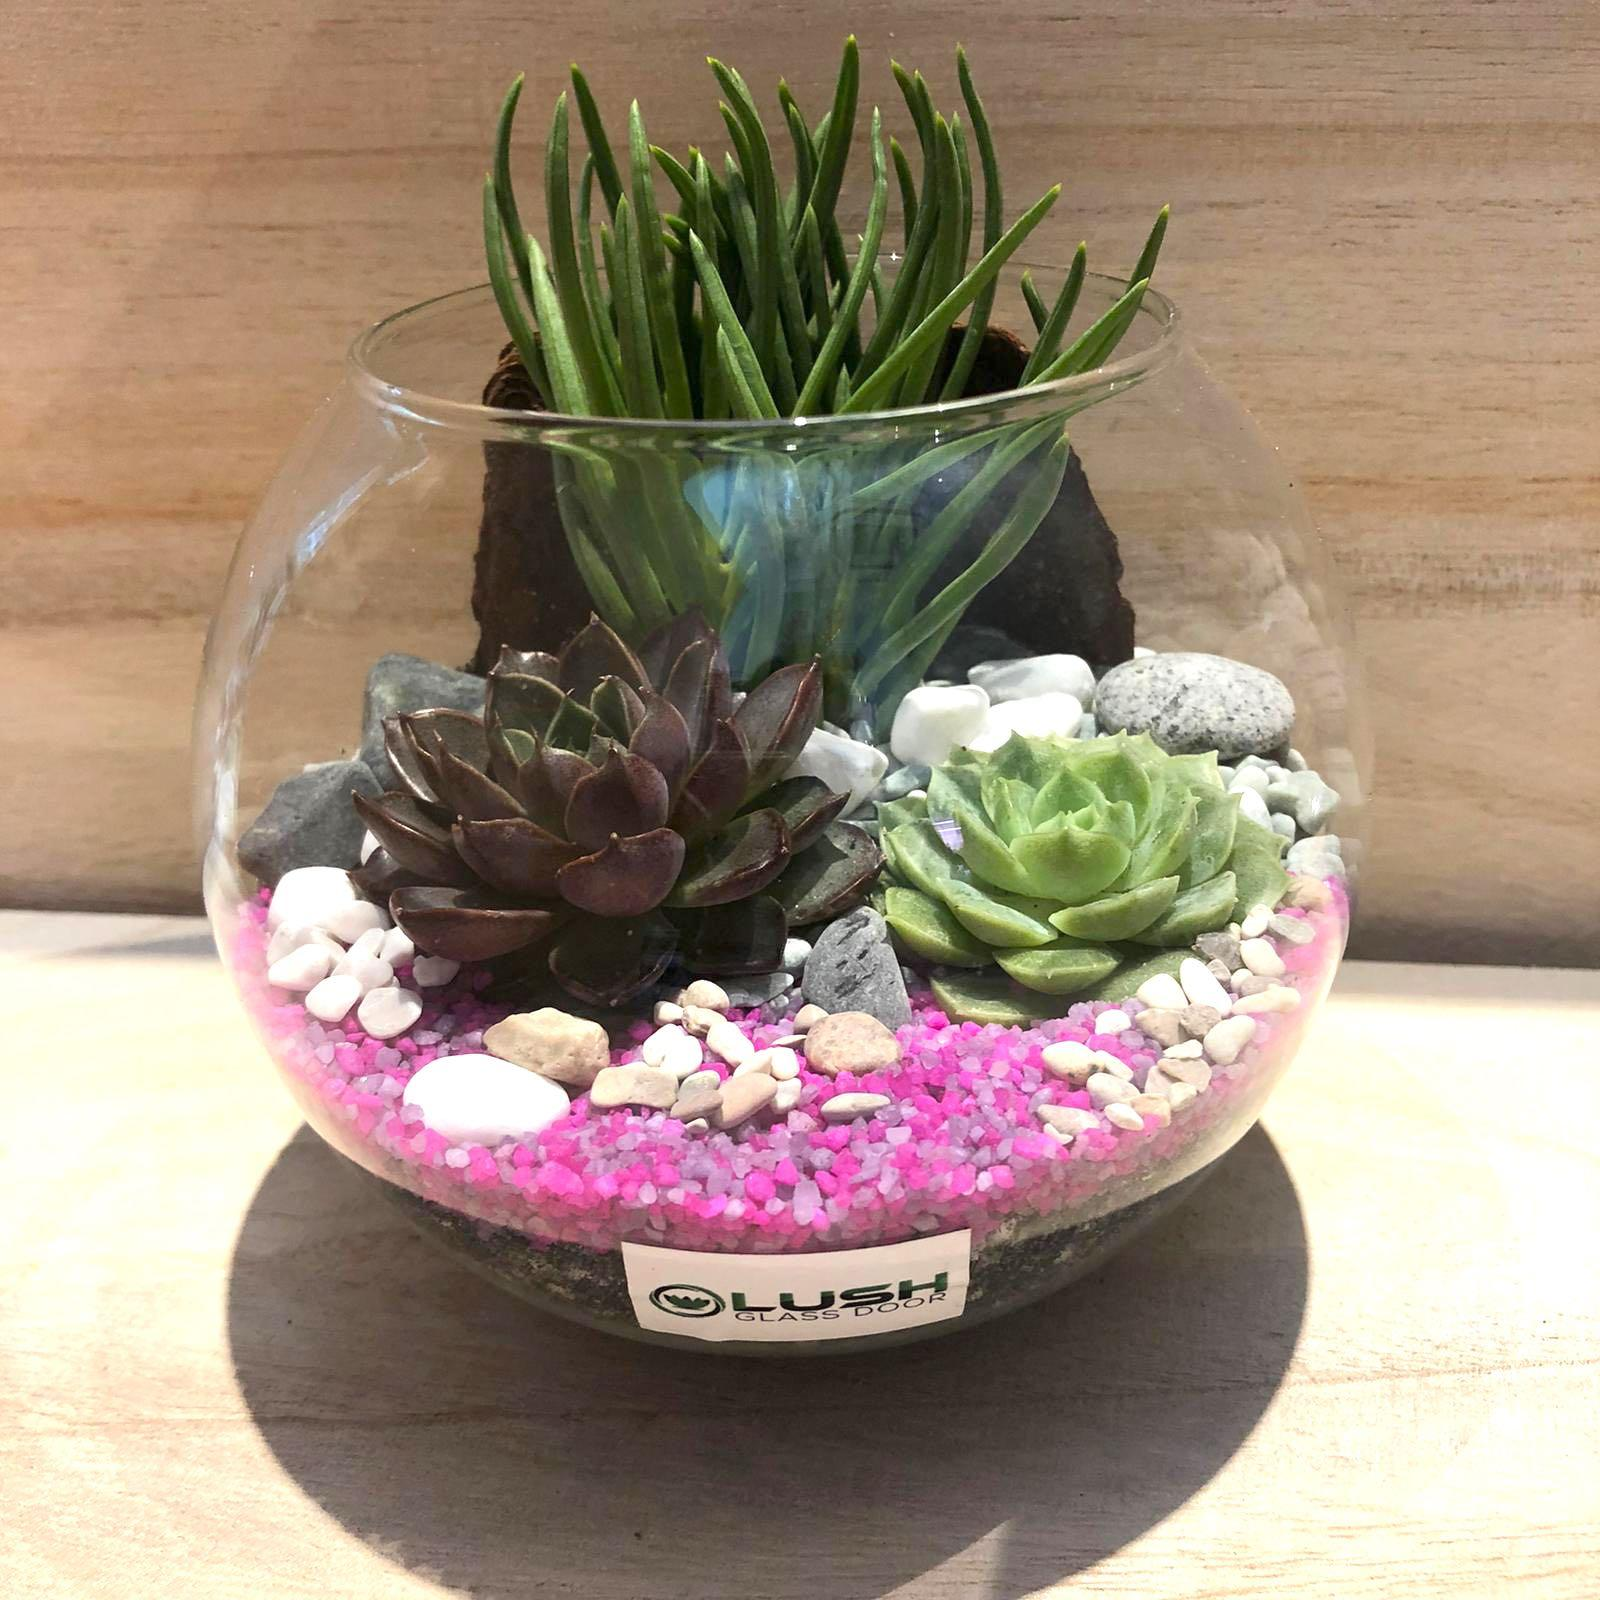 Perfect Gift For Valentines Anniversary Birthday House Warming Christmas Real Succulent Plant Terrarium Gardening Plants On Carousell